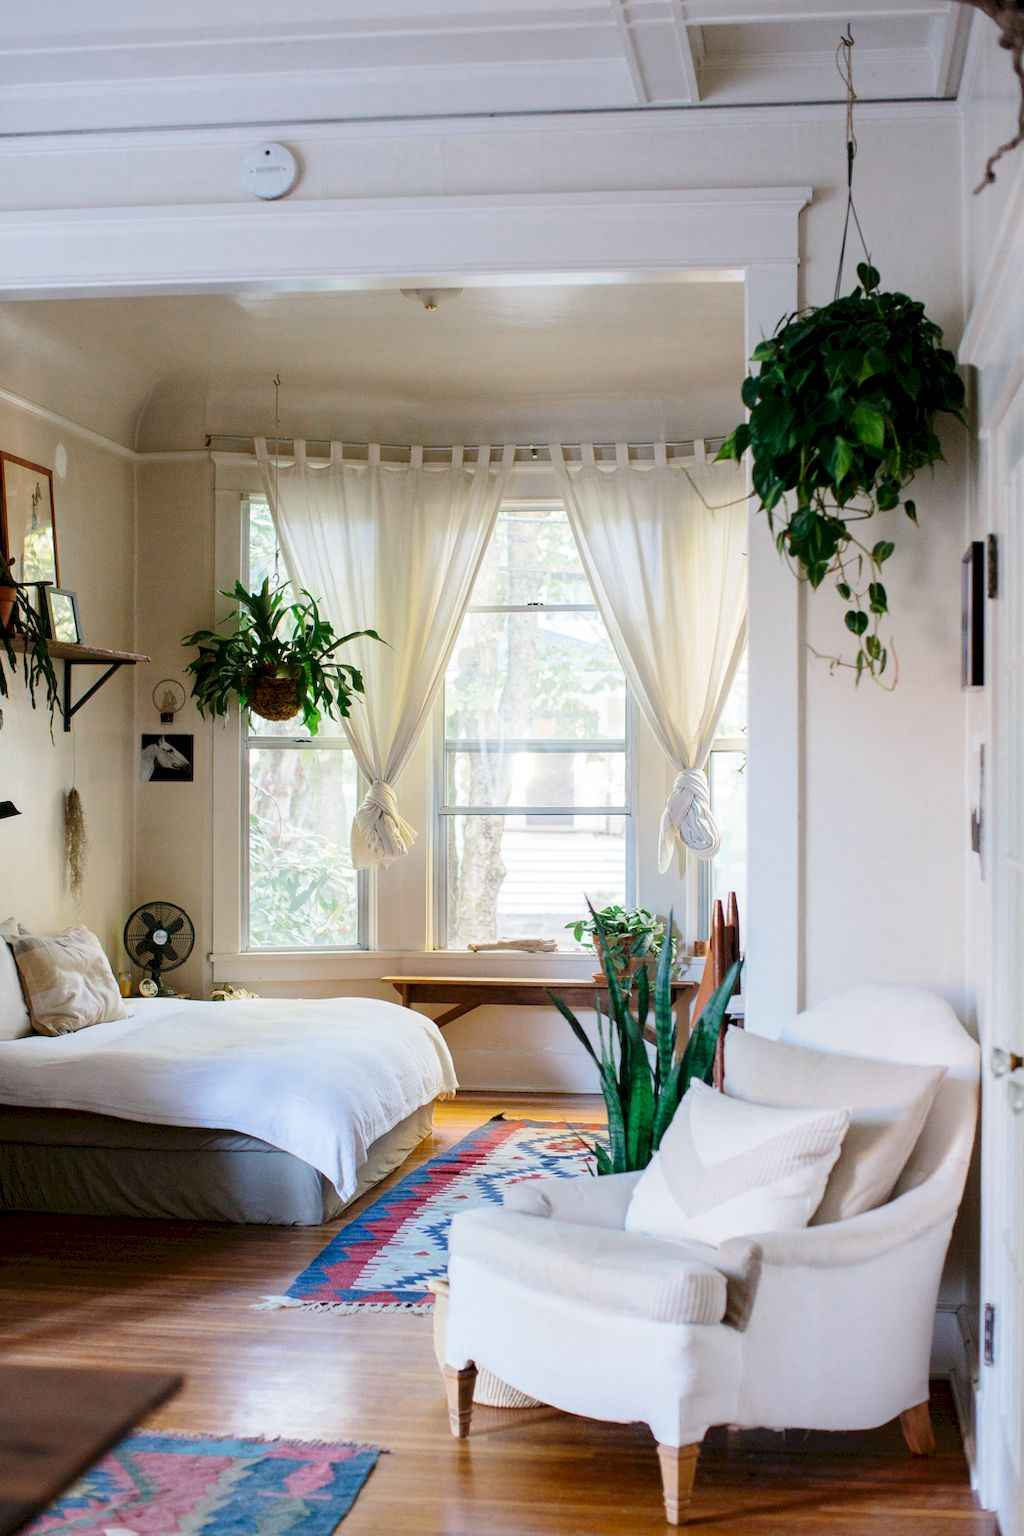 Small Apartment Studio Decorating Ideas On A Budget 23